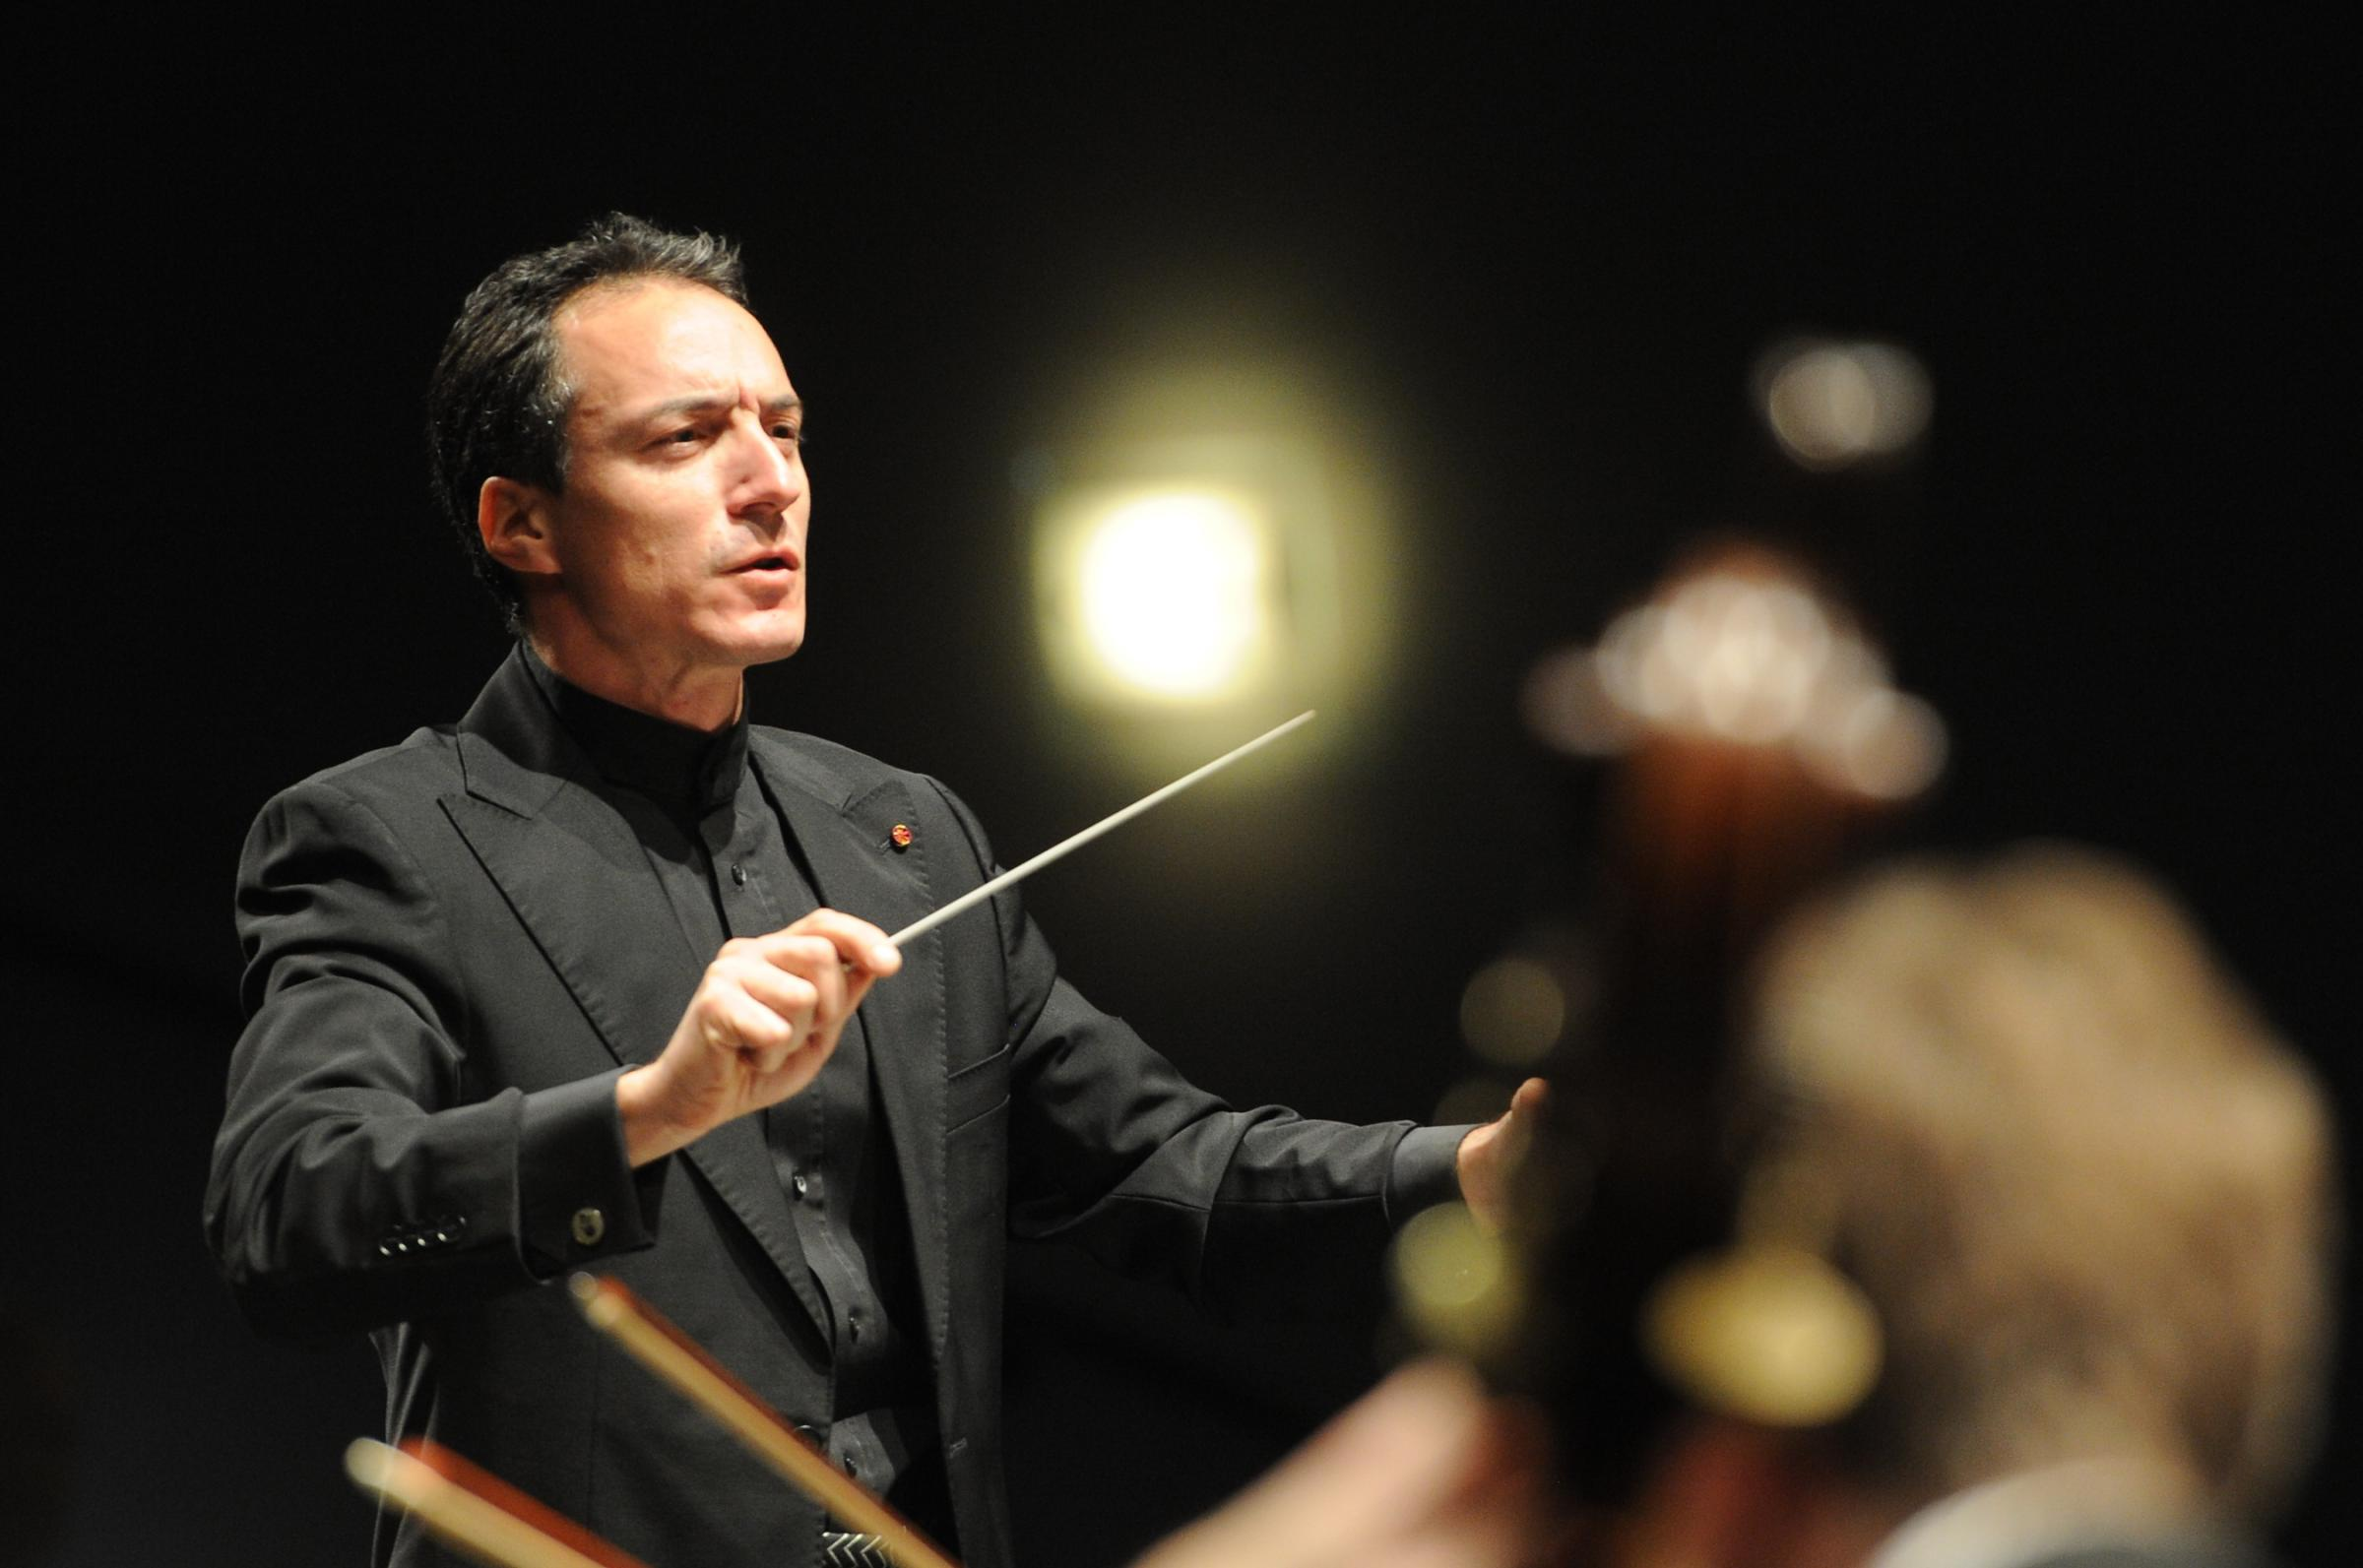 Damian Iorio: conducting the National Youth String Orchestra in York